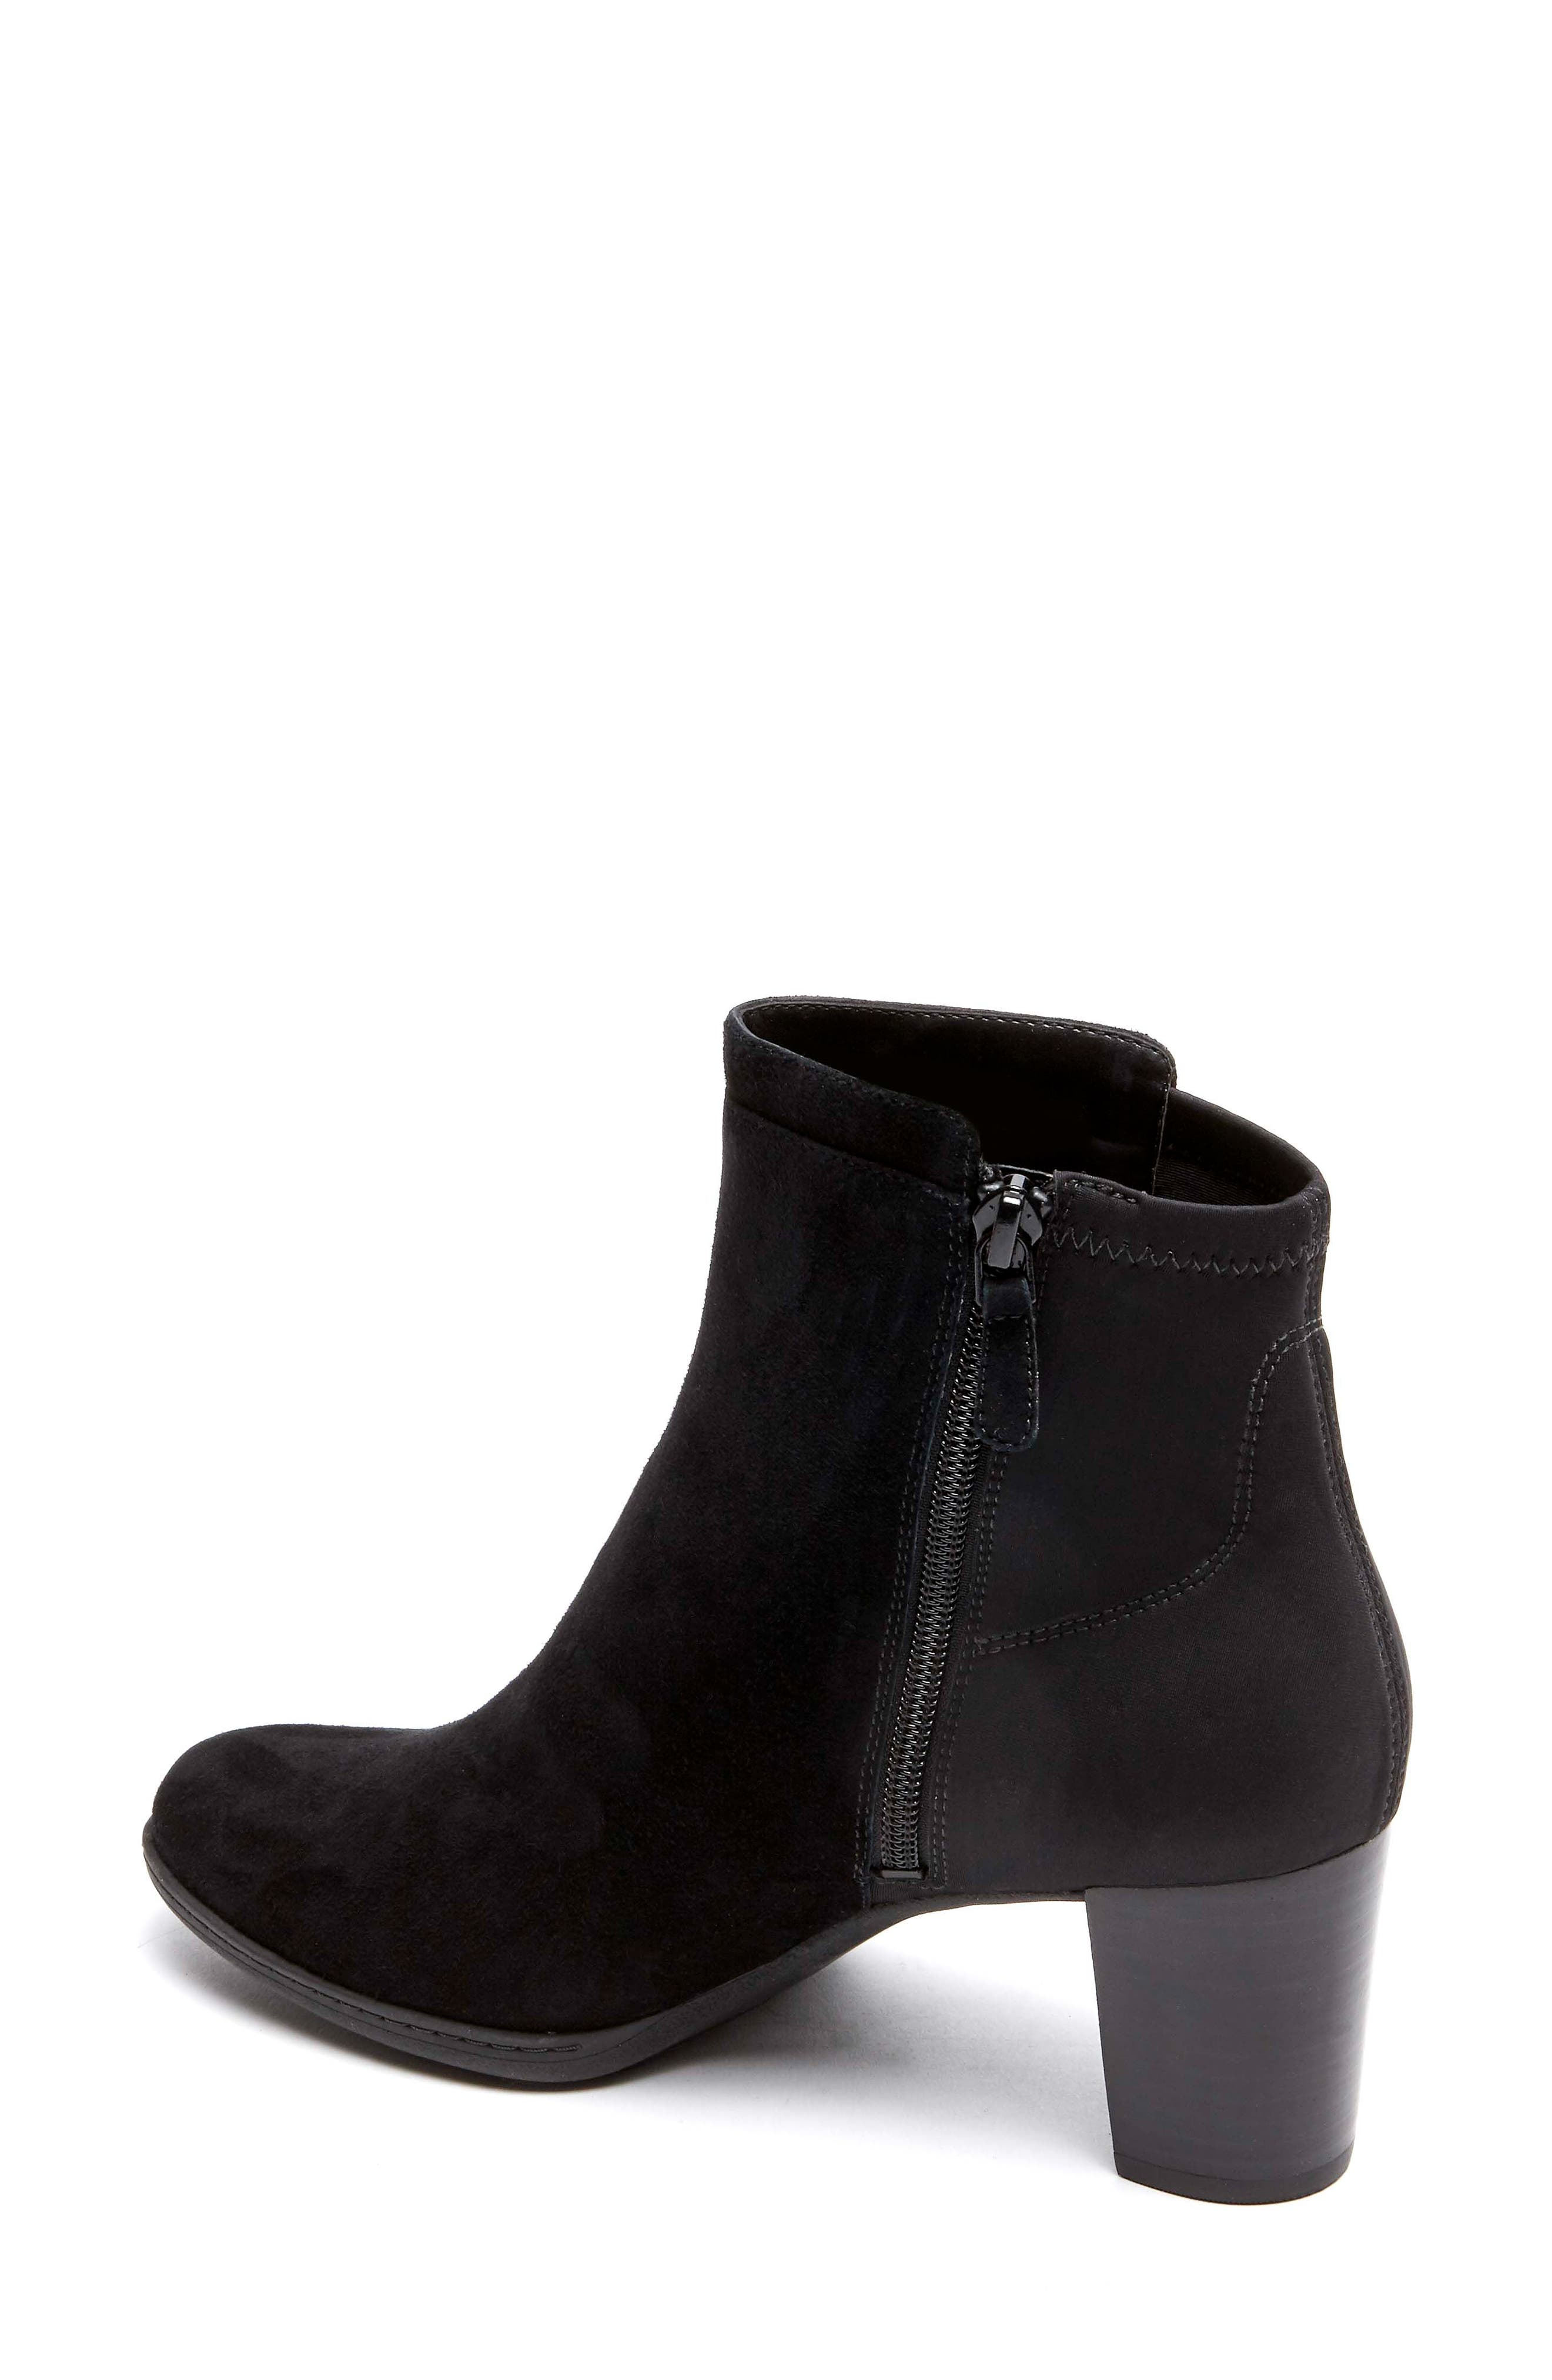 Chaya Bootie,                             Alternate thumbnail 2, color,                             BLACK SUEDE